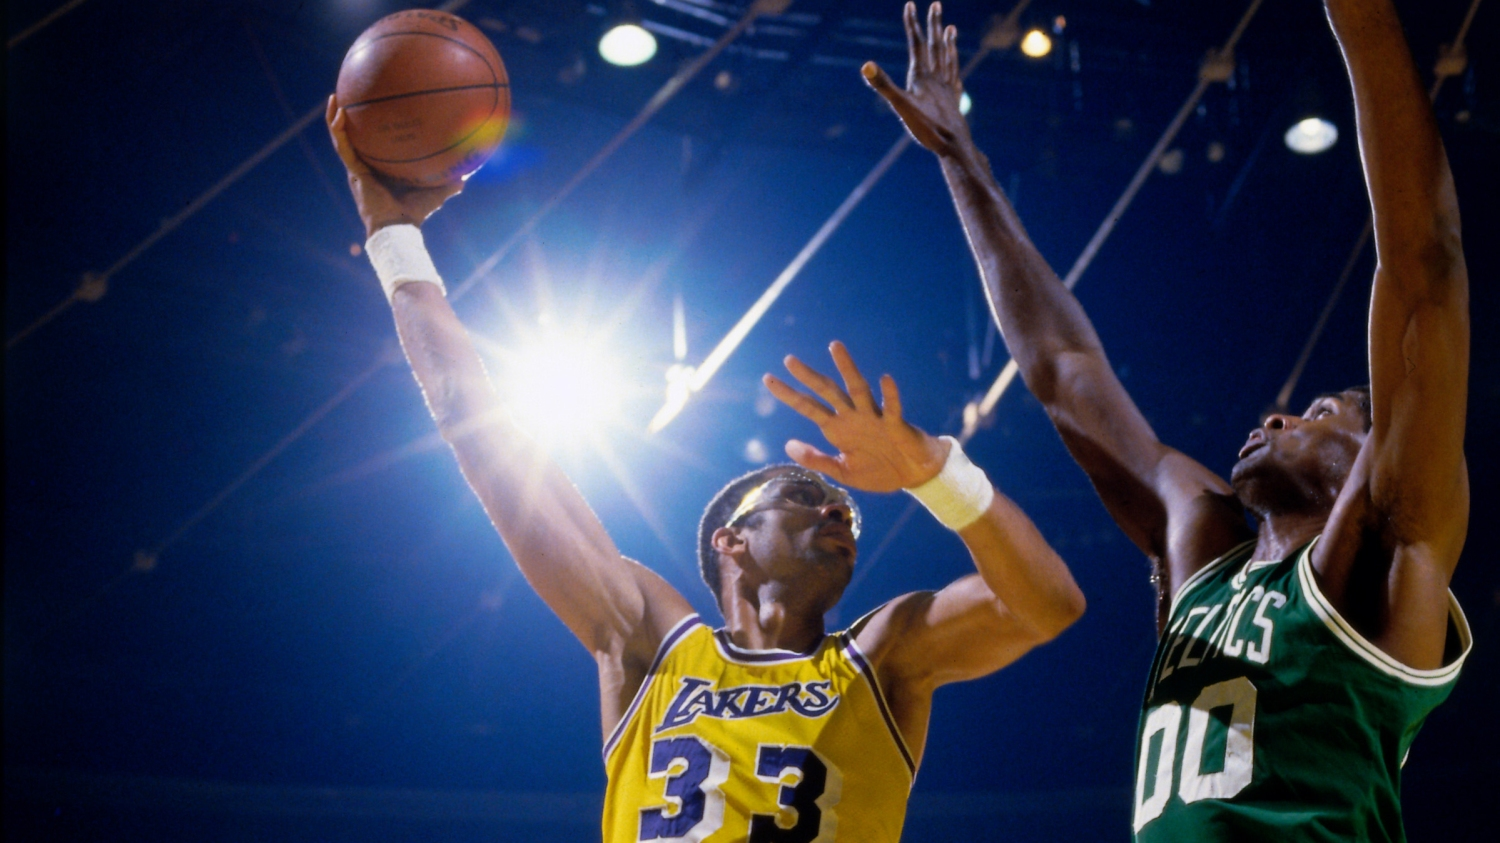 Kareem Abdul-Jabbar  33 of the Los Angeles Lakers shoots the ball against  Robert Parish  00 of the Boston Celtics during a game in 1984 at the Great  Western ... b5a6c6f9c8